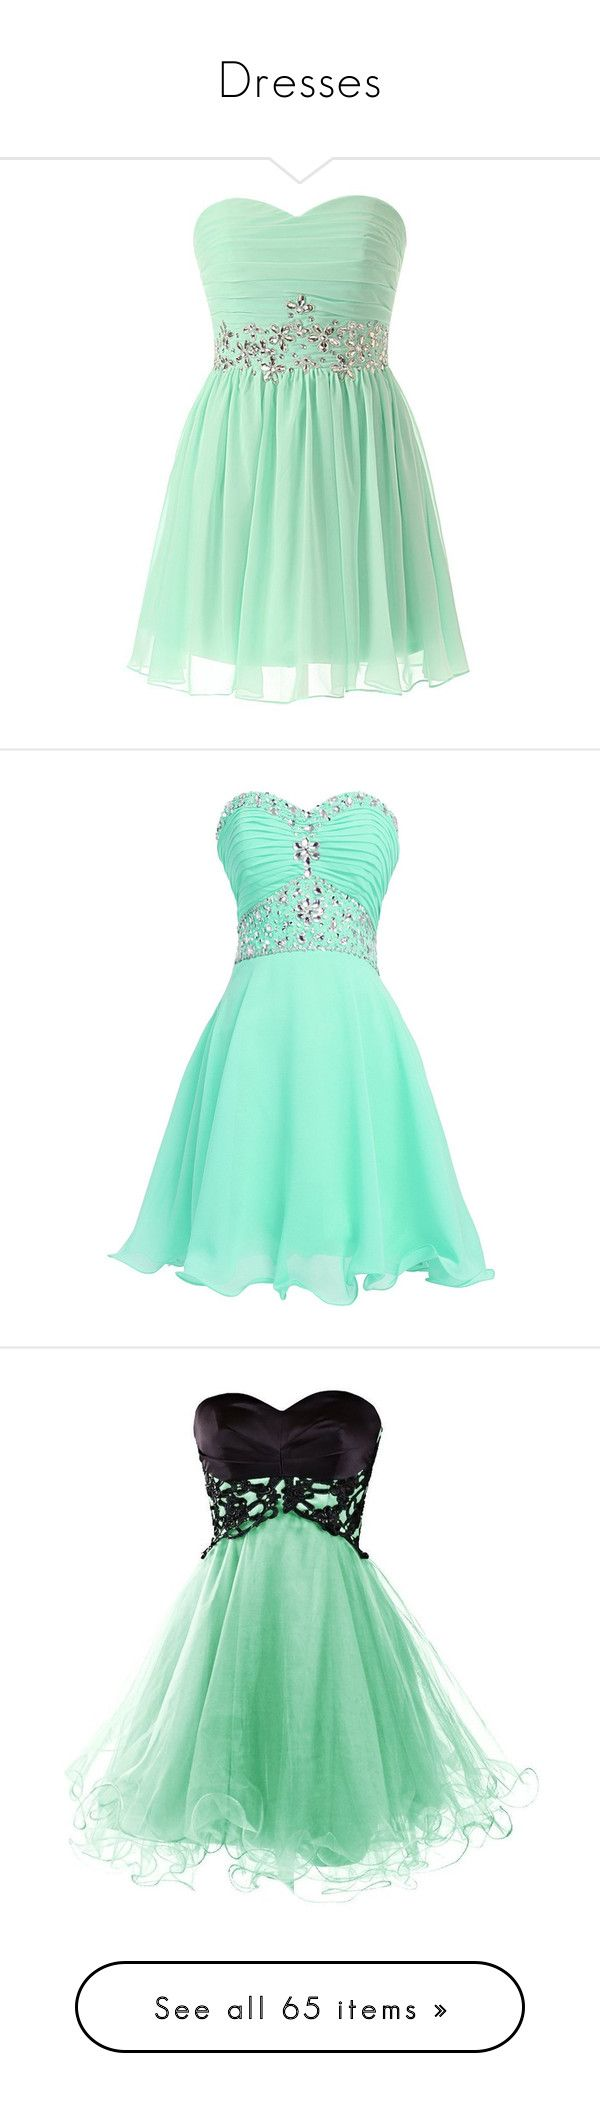 """Dresses"" by tigresslee ❤ liked on Polyvore featuring dresses, vestidos, short beaded dress, mint green dress, plus size mint dress, mint bridesmaid dresses, beaded bridesmaid dresses, short dresses, vestidos curtos and mini dress"